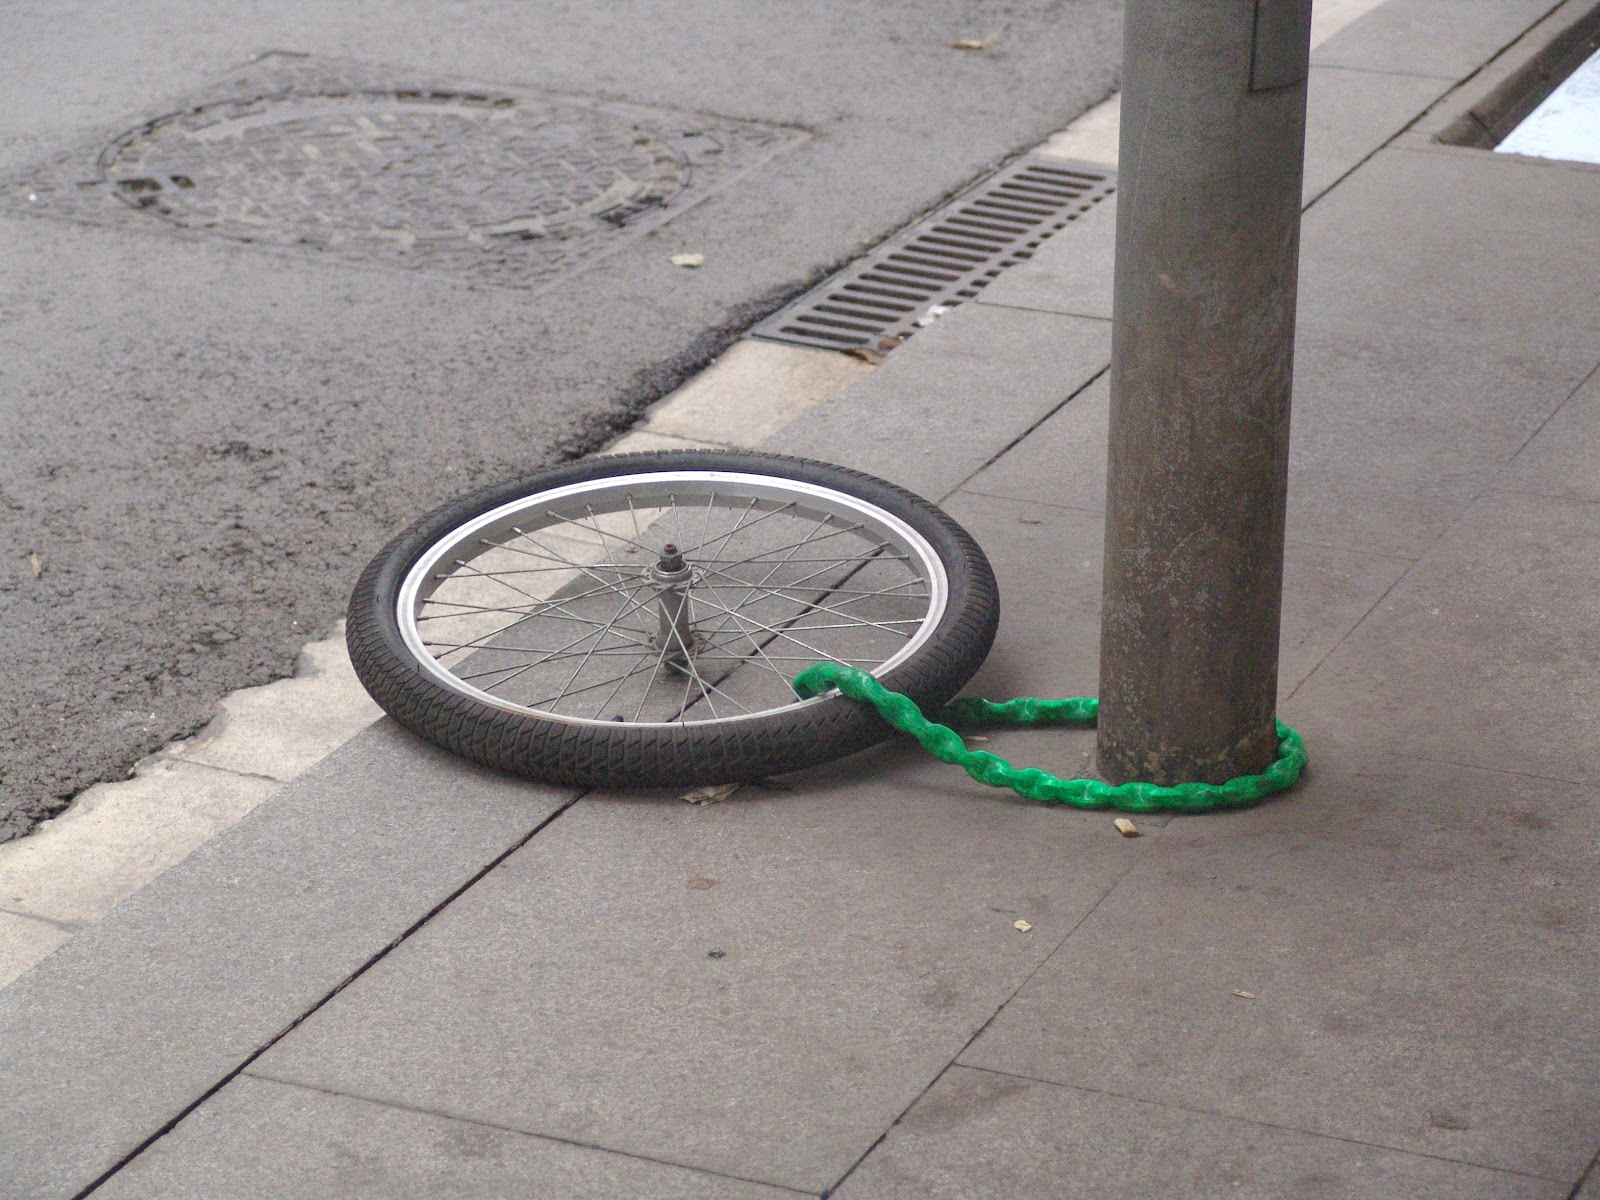 Bad Bike Lock